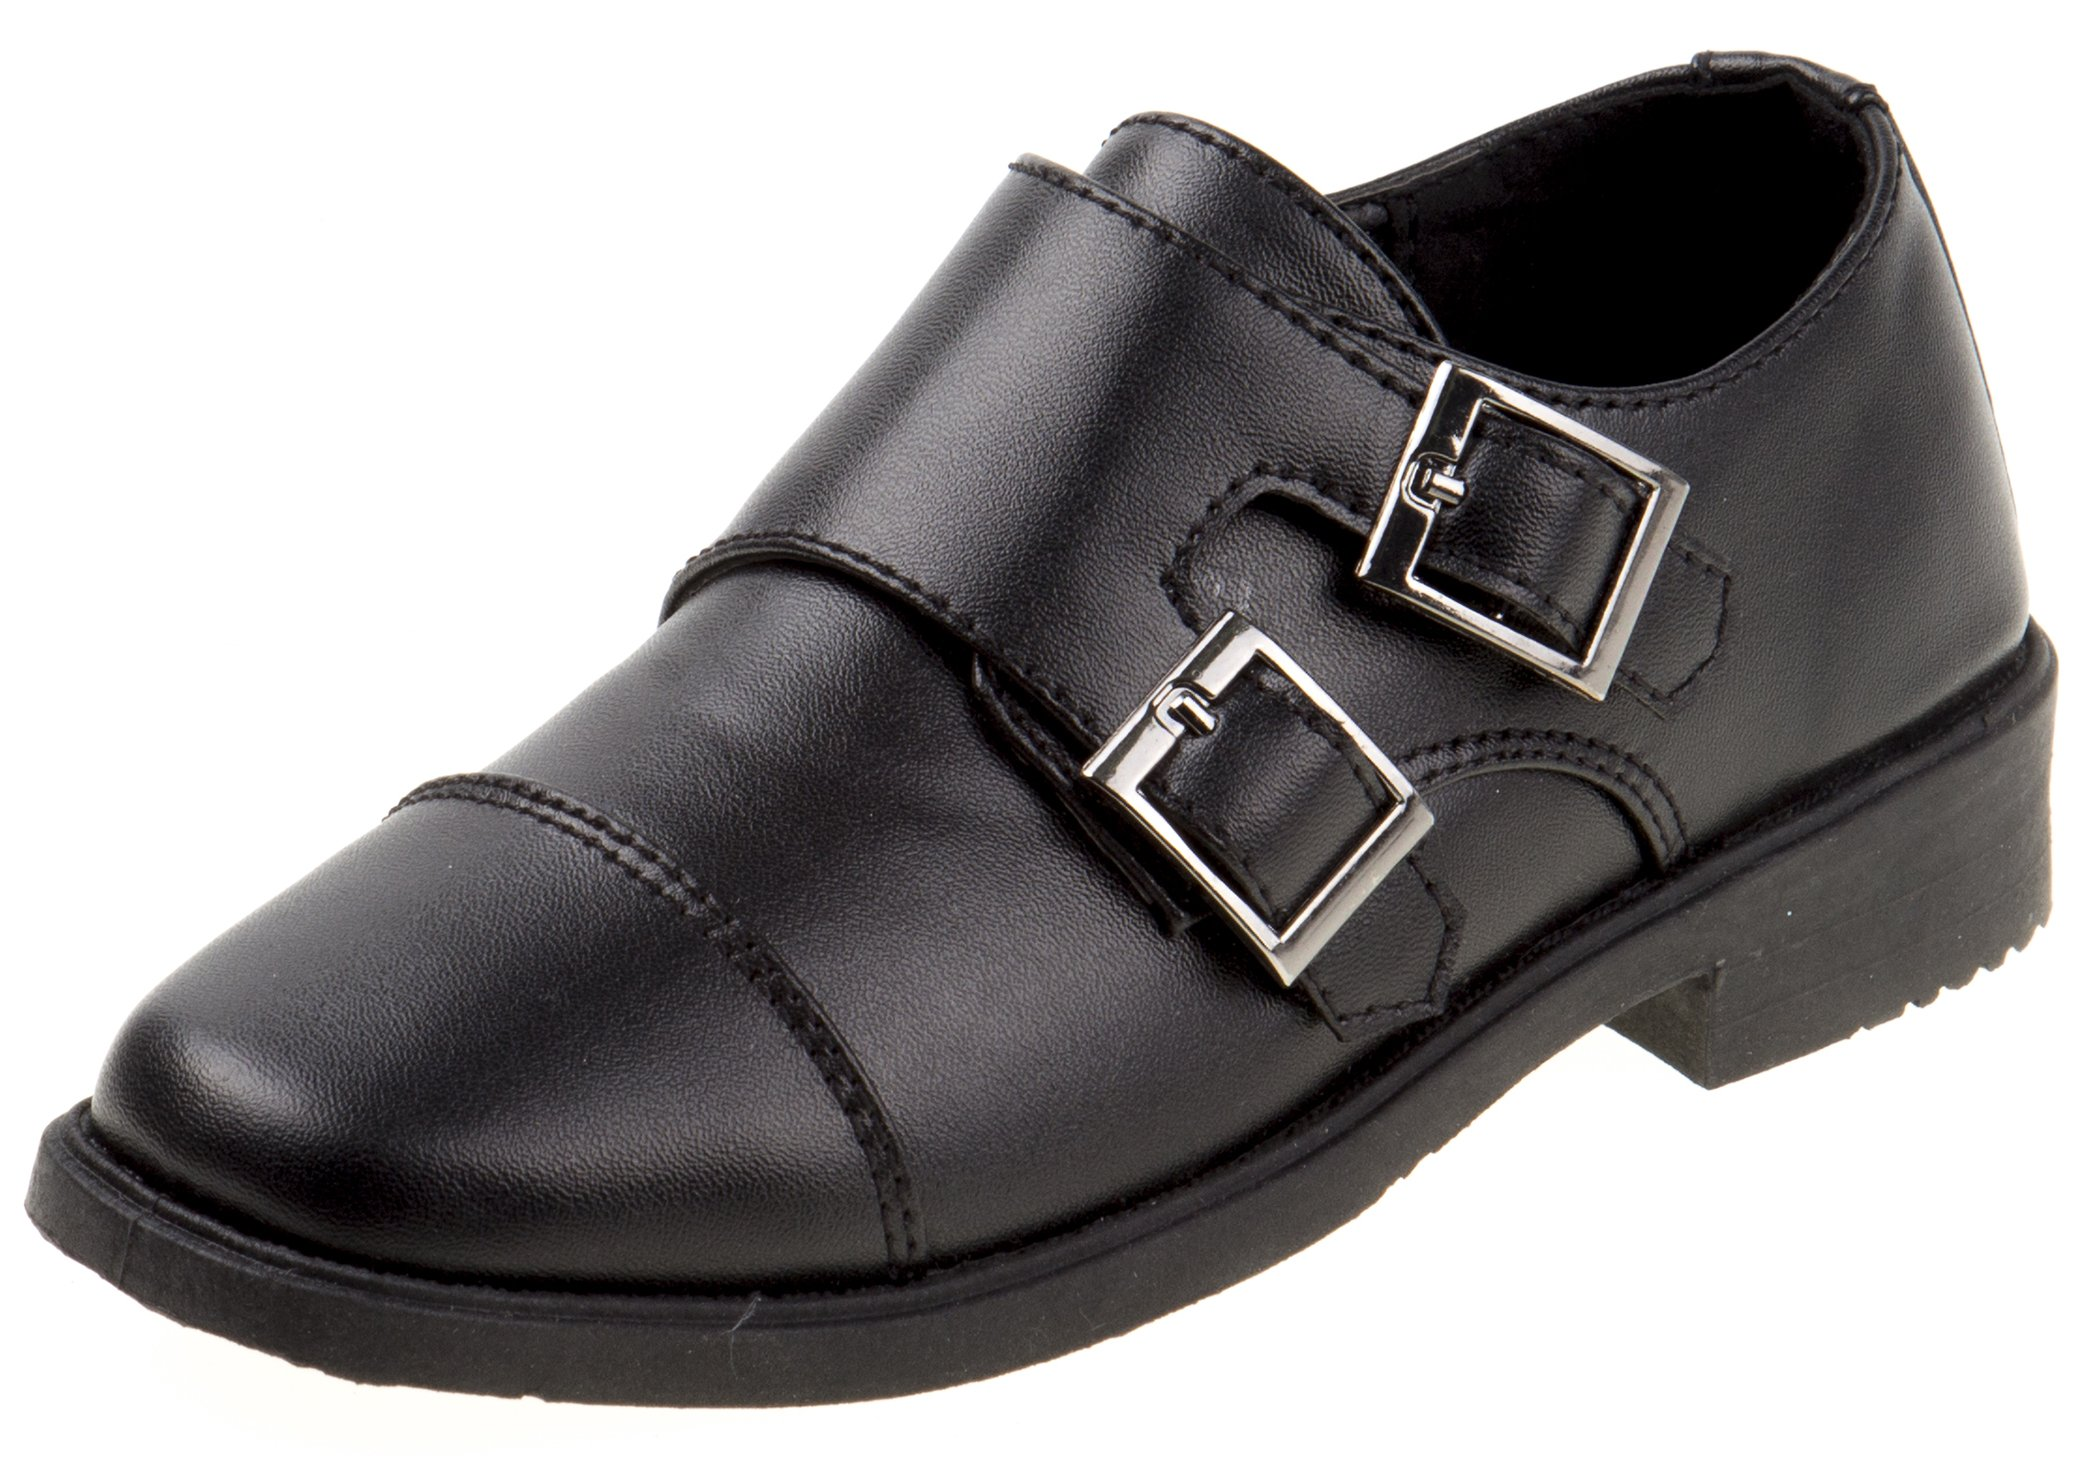 Josmo Boys Easy Strap Oxford Dress Shoe (Toddler/Little Kid/Big Kid), Black, 8 US Toddler'